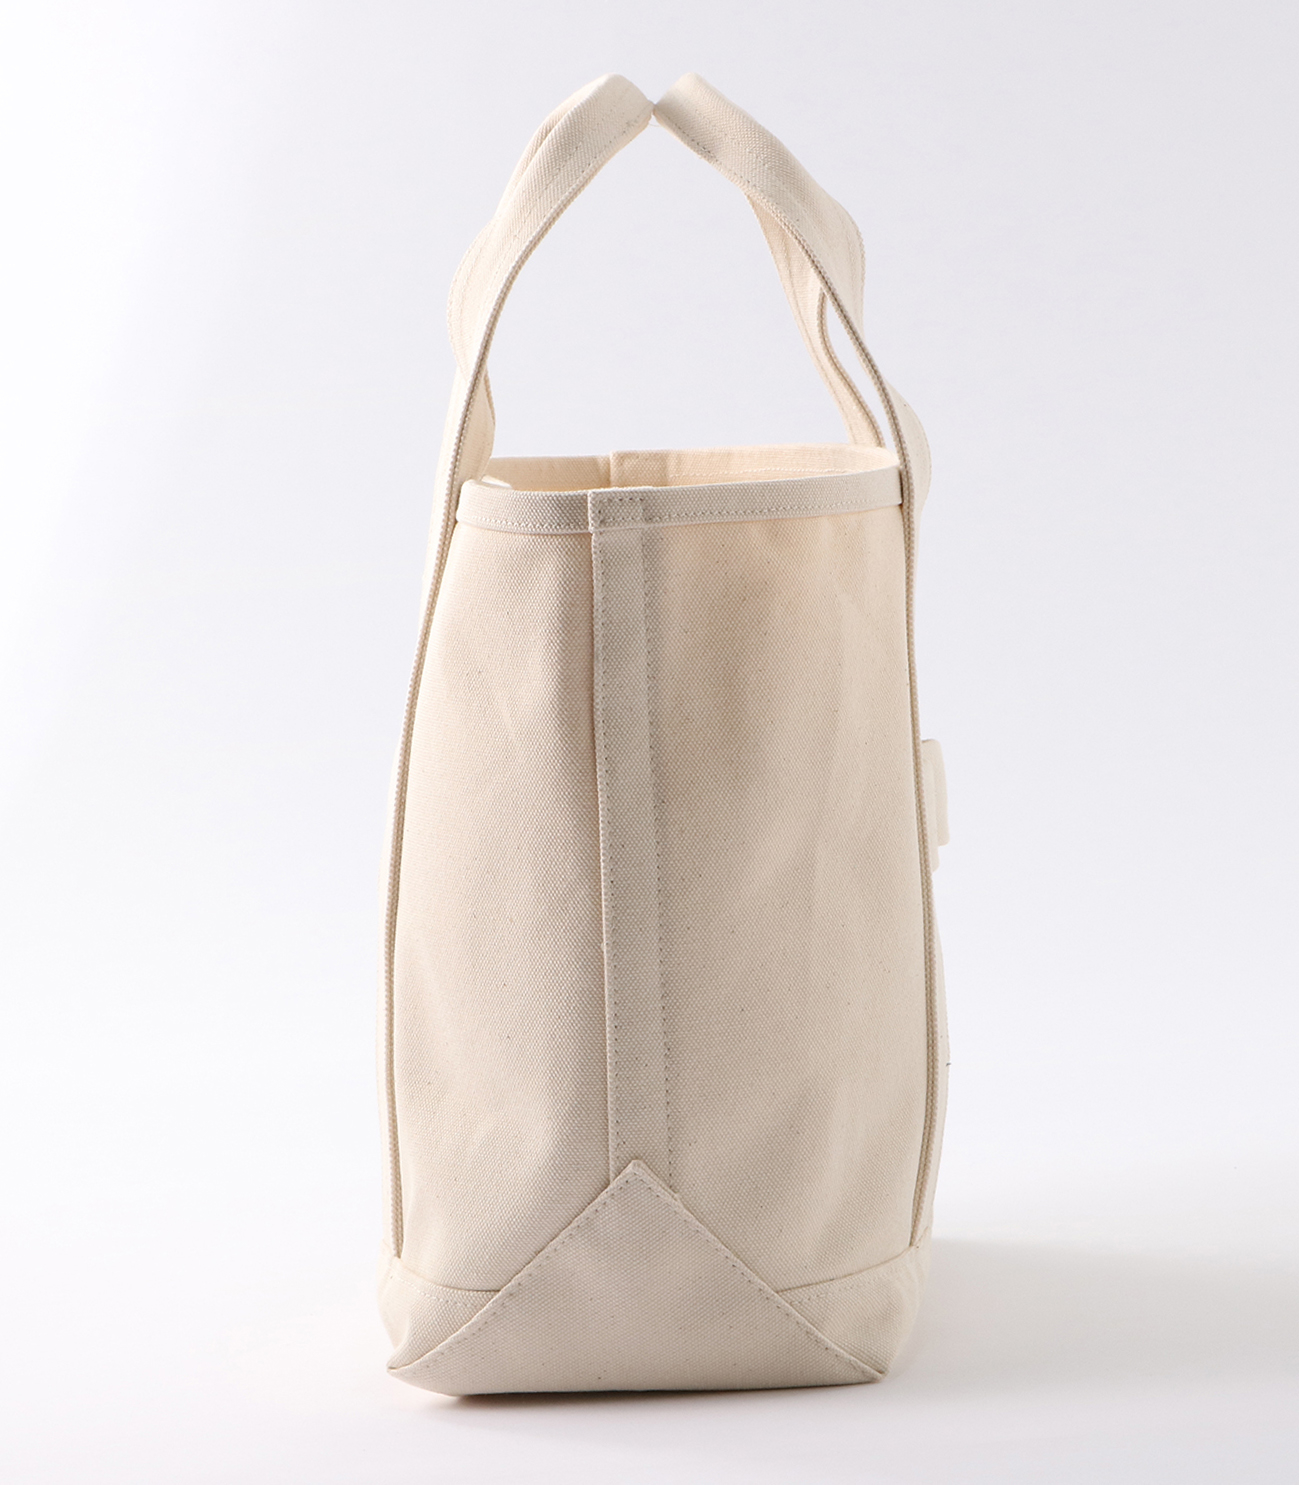 middle tote bag 詳細画像 white 2